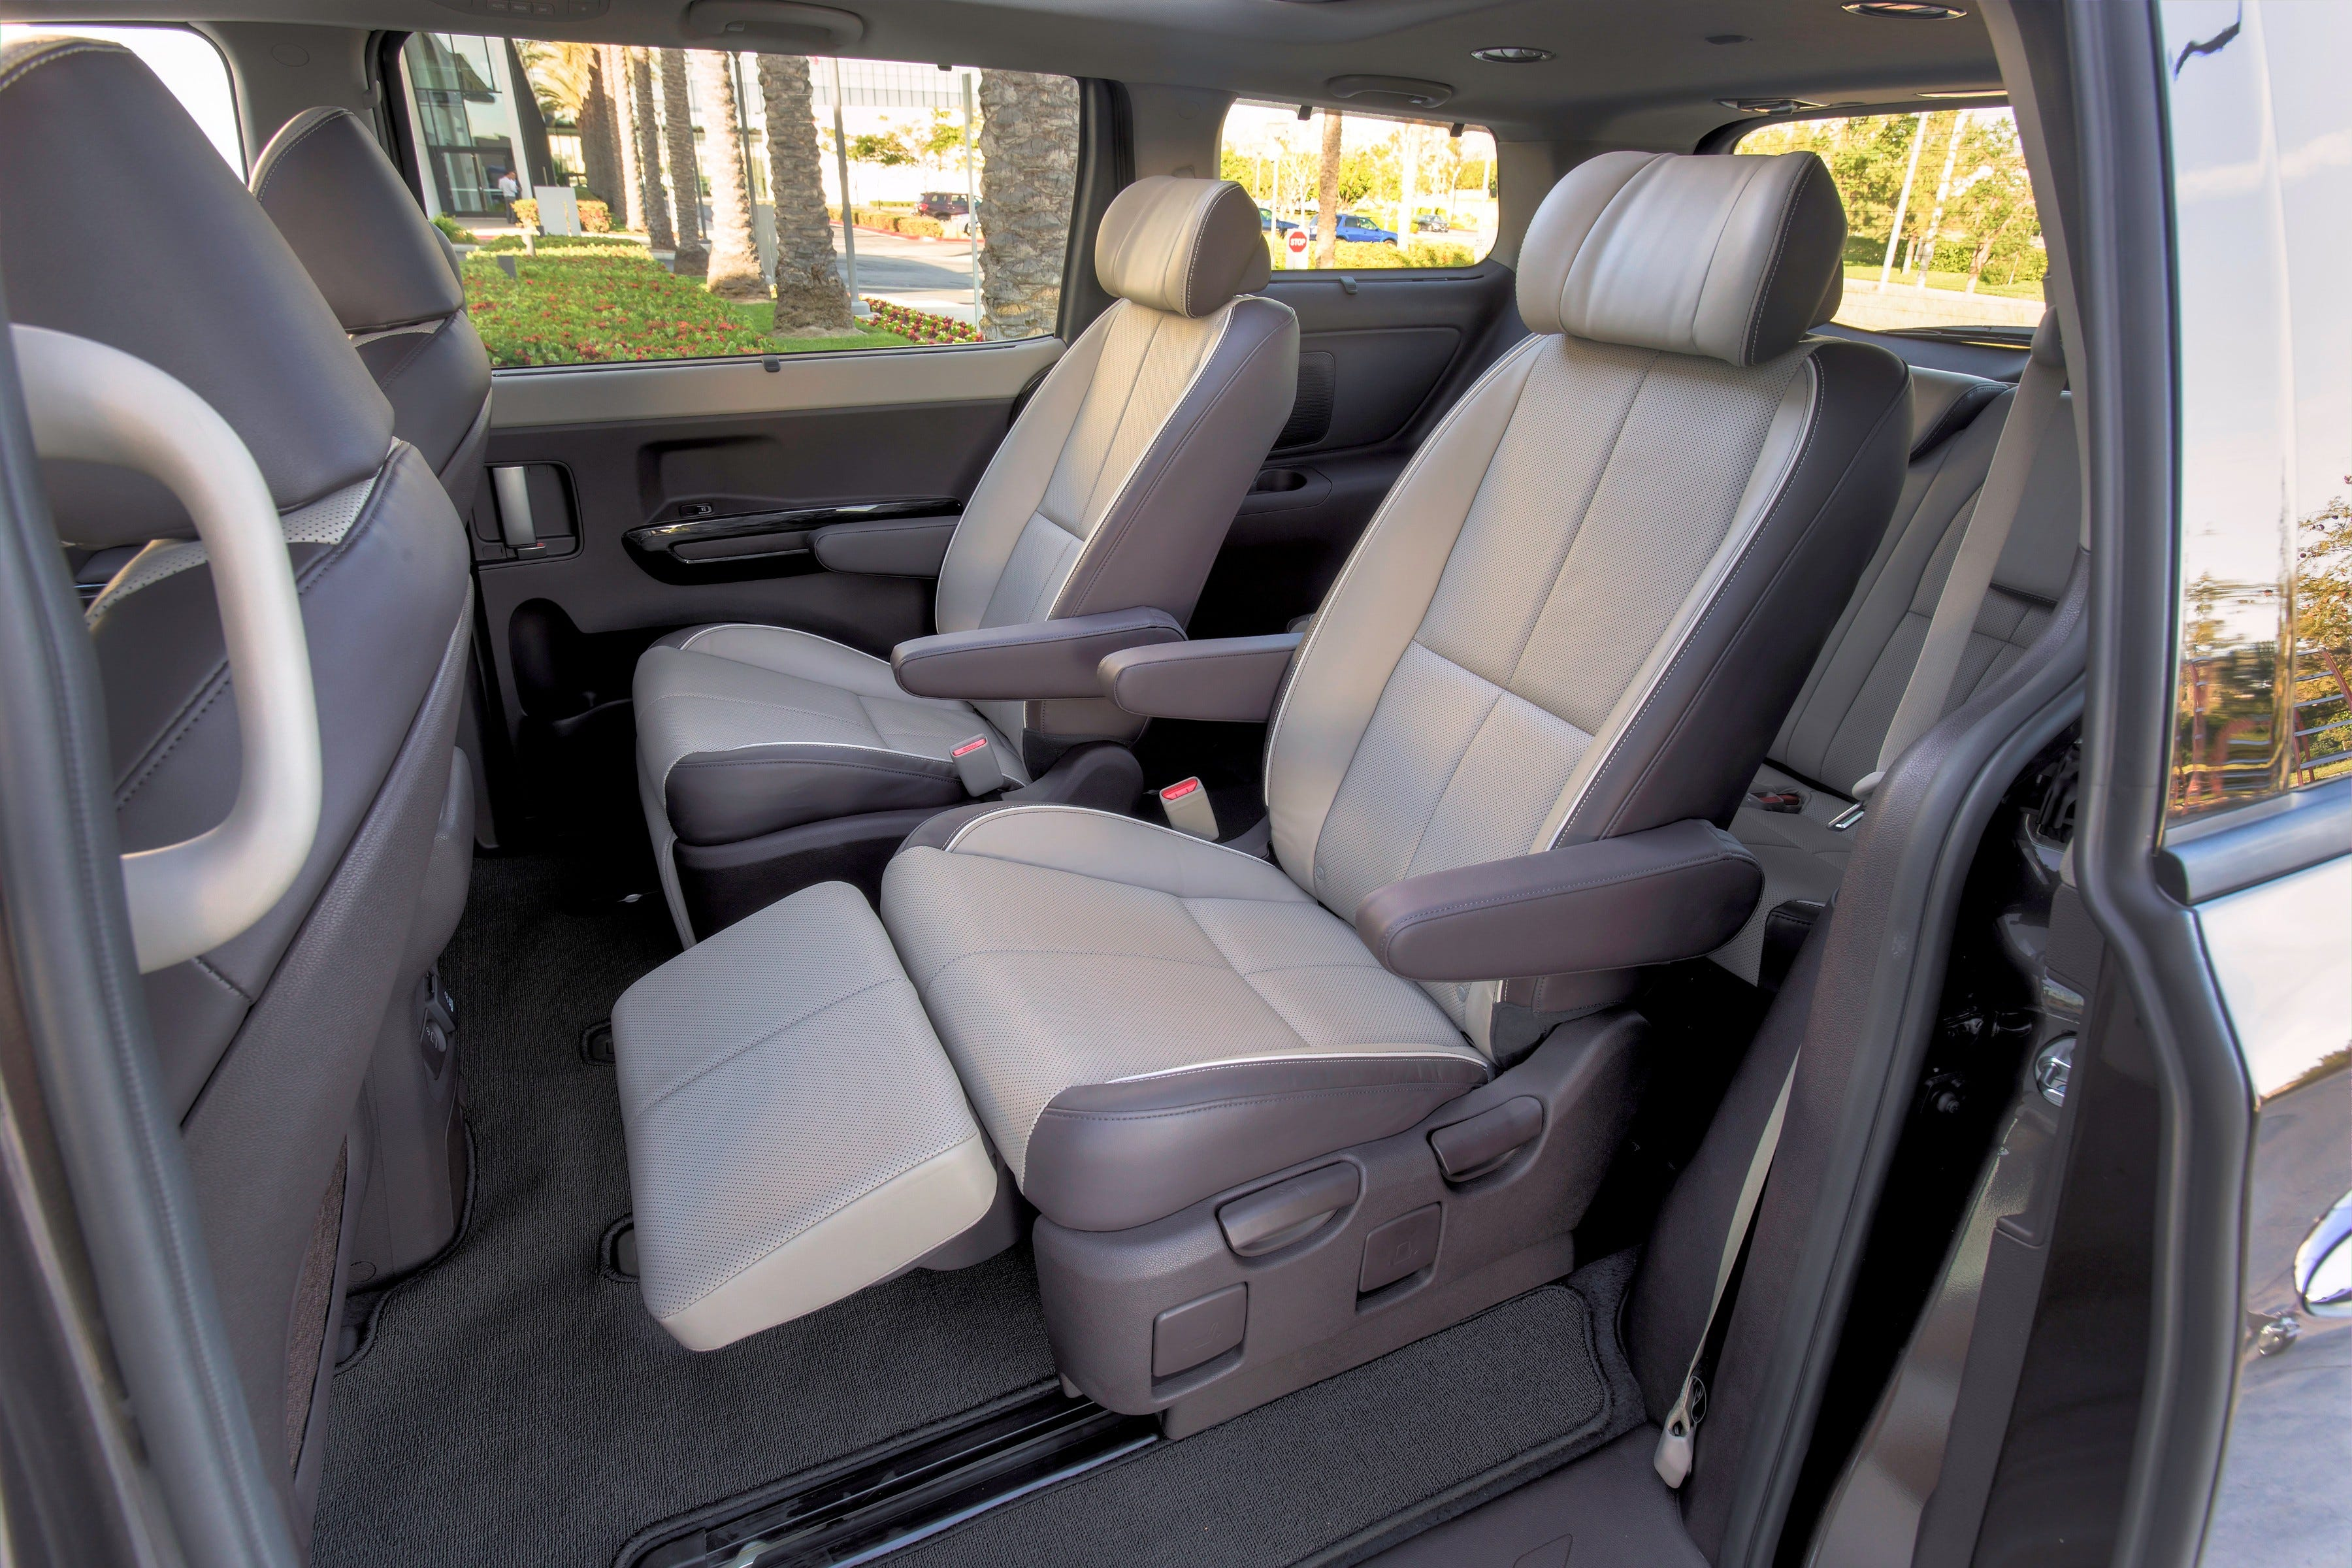 Second-row reclining lounge seats in high-end models & Test Drive: Kia Sedona van has 1st-class seating islam-shia.org